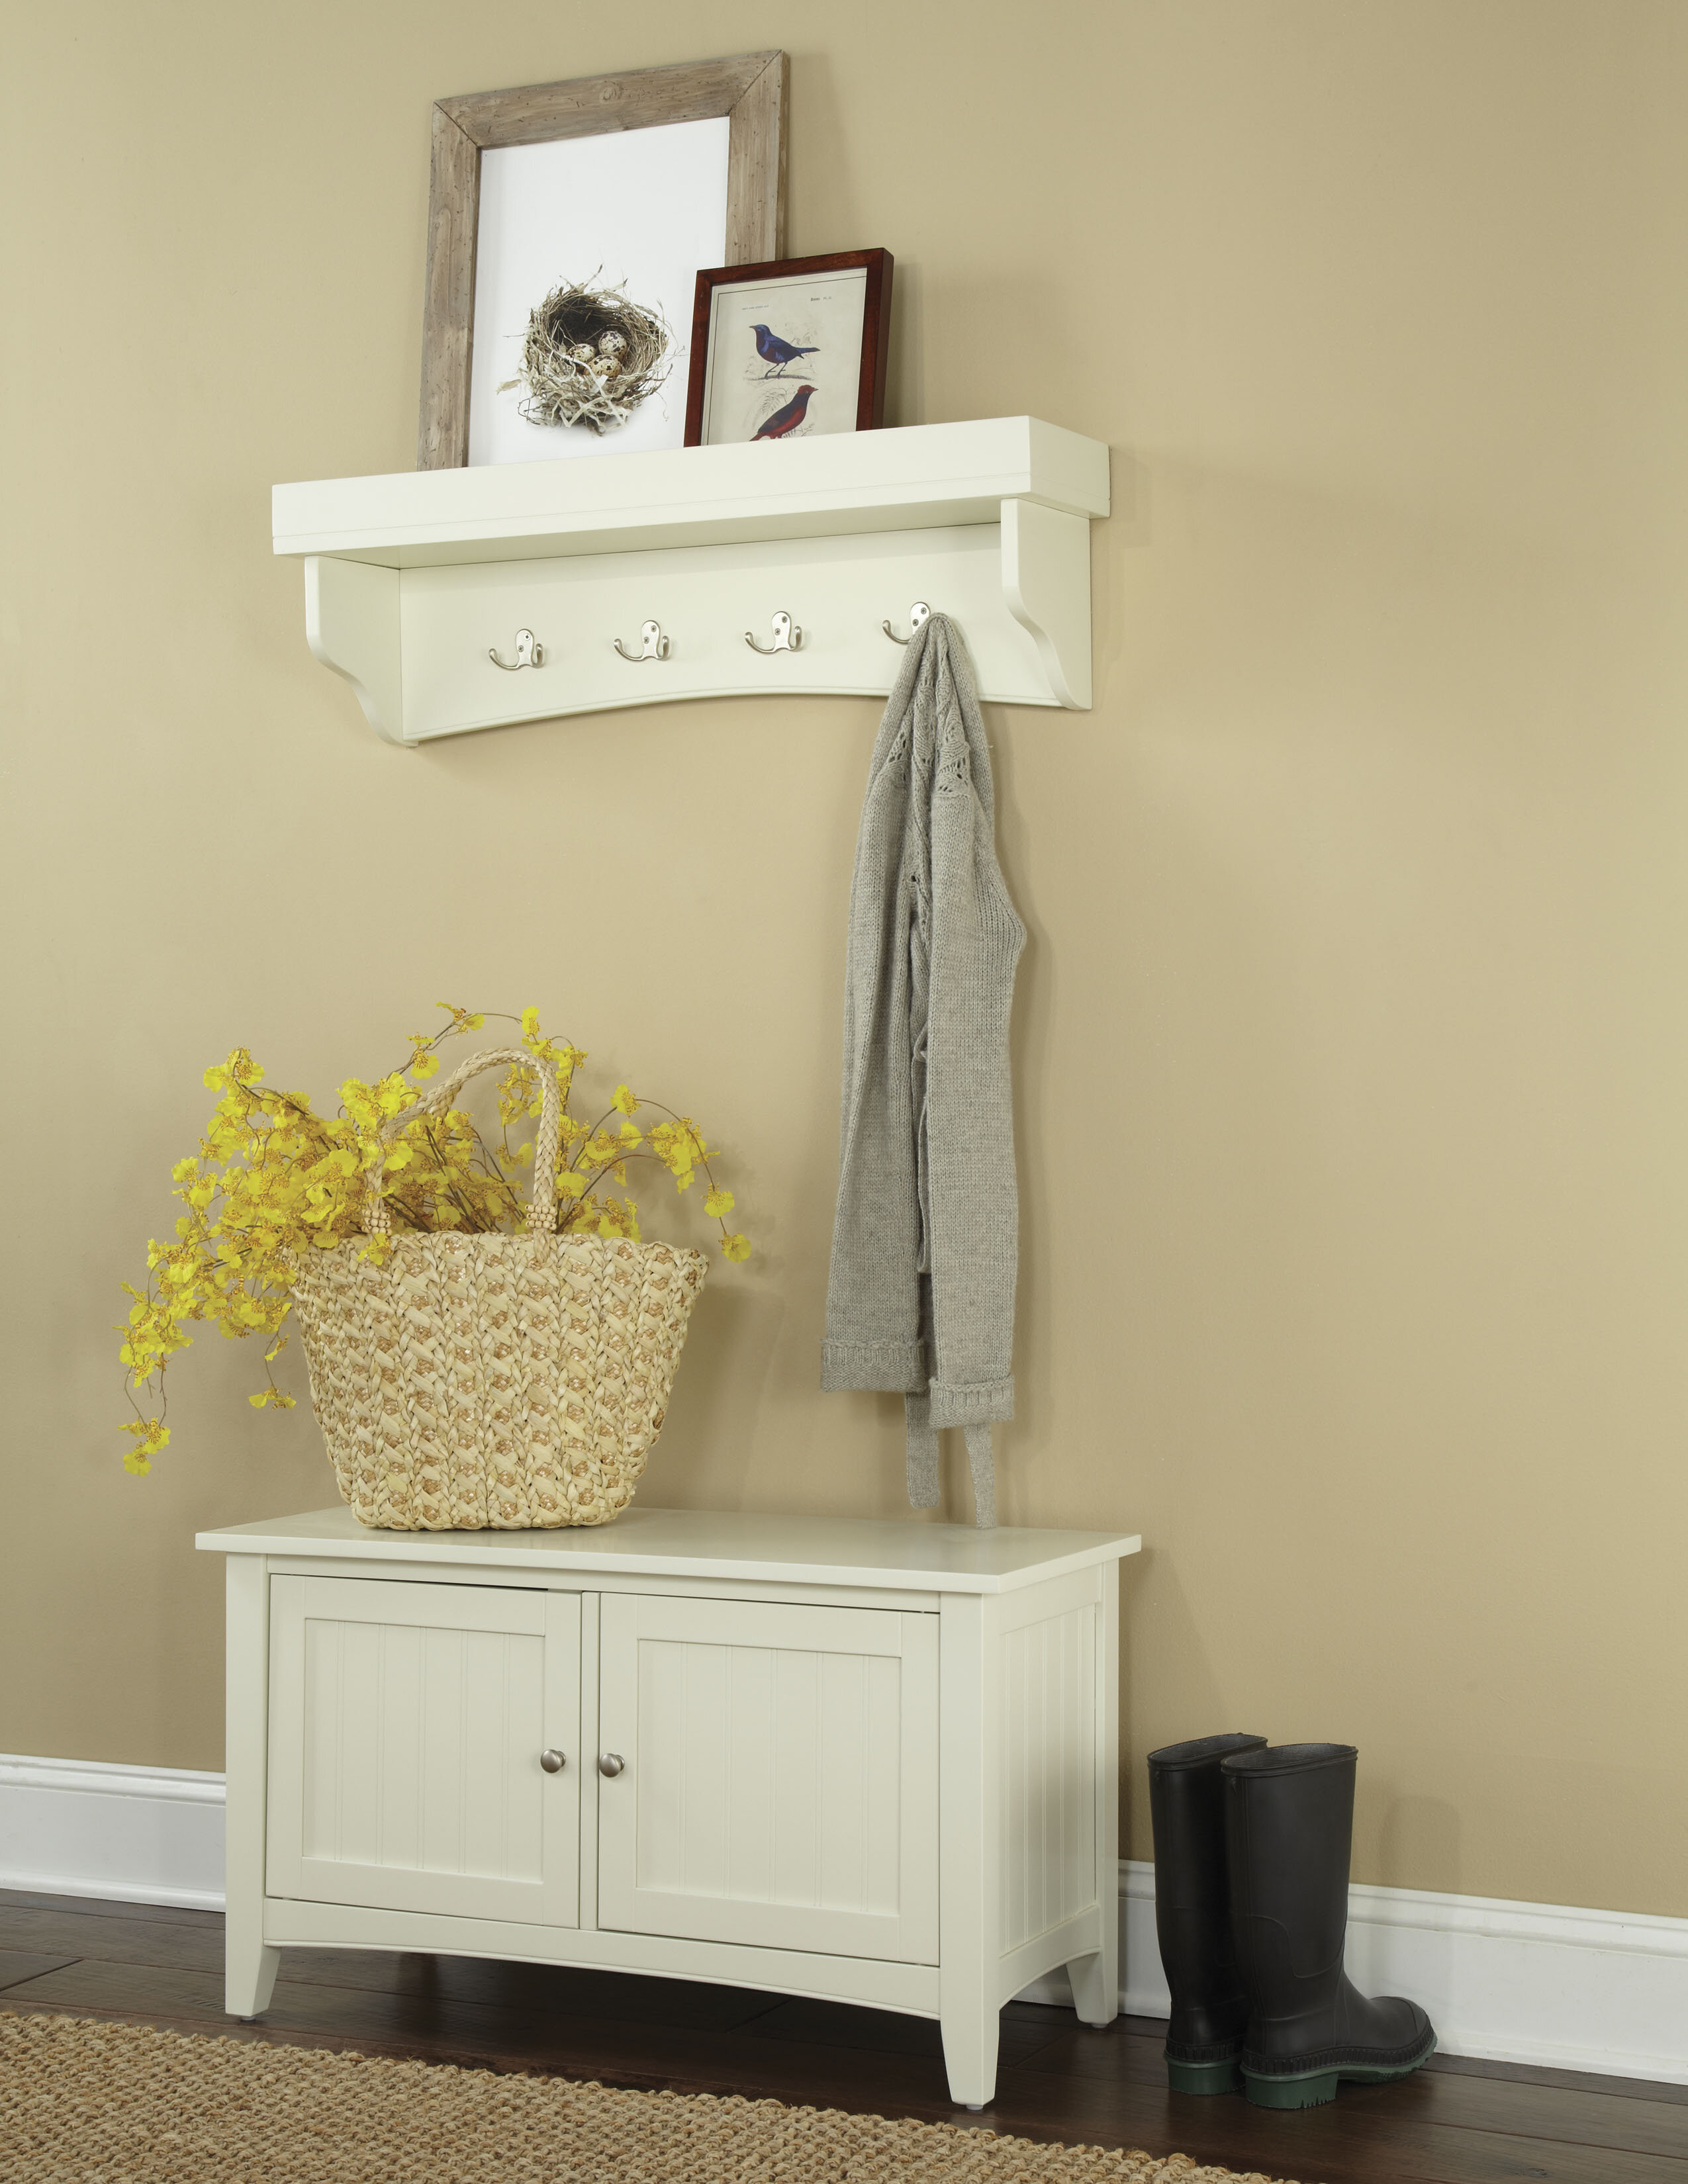 Alcott Hill Bel Air 2 Piece Hall Tree Coat Hook and Cabinet Set ...